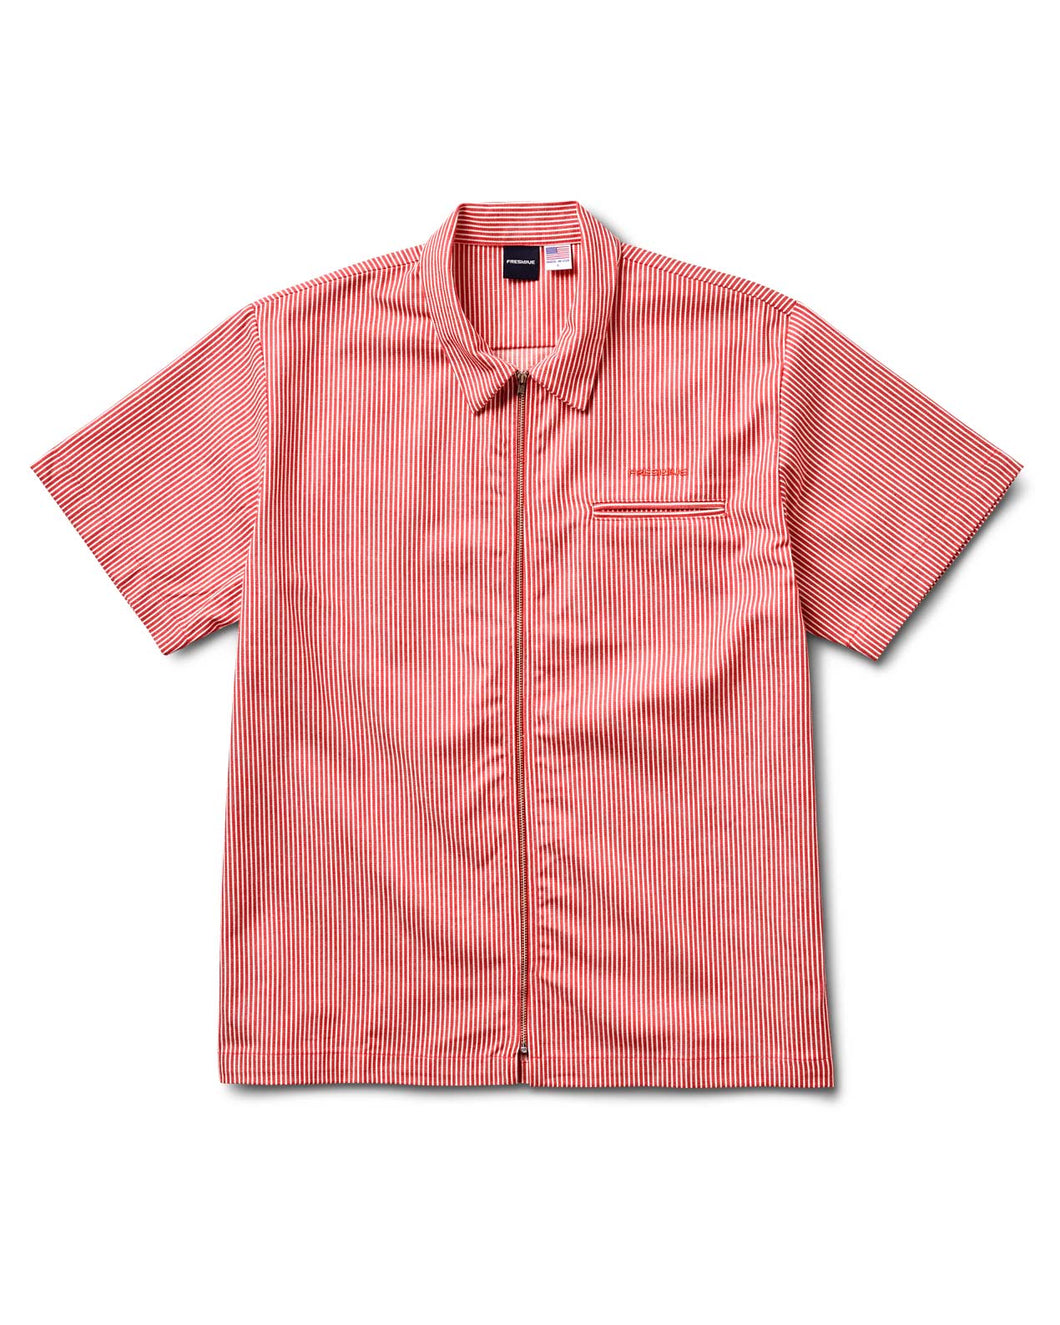 San Pedro Shirt Red